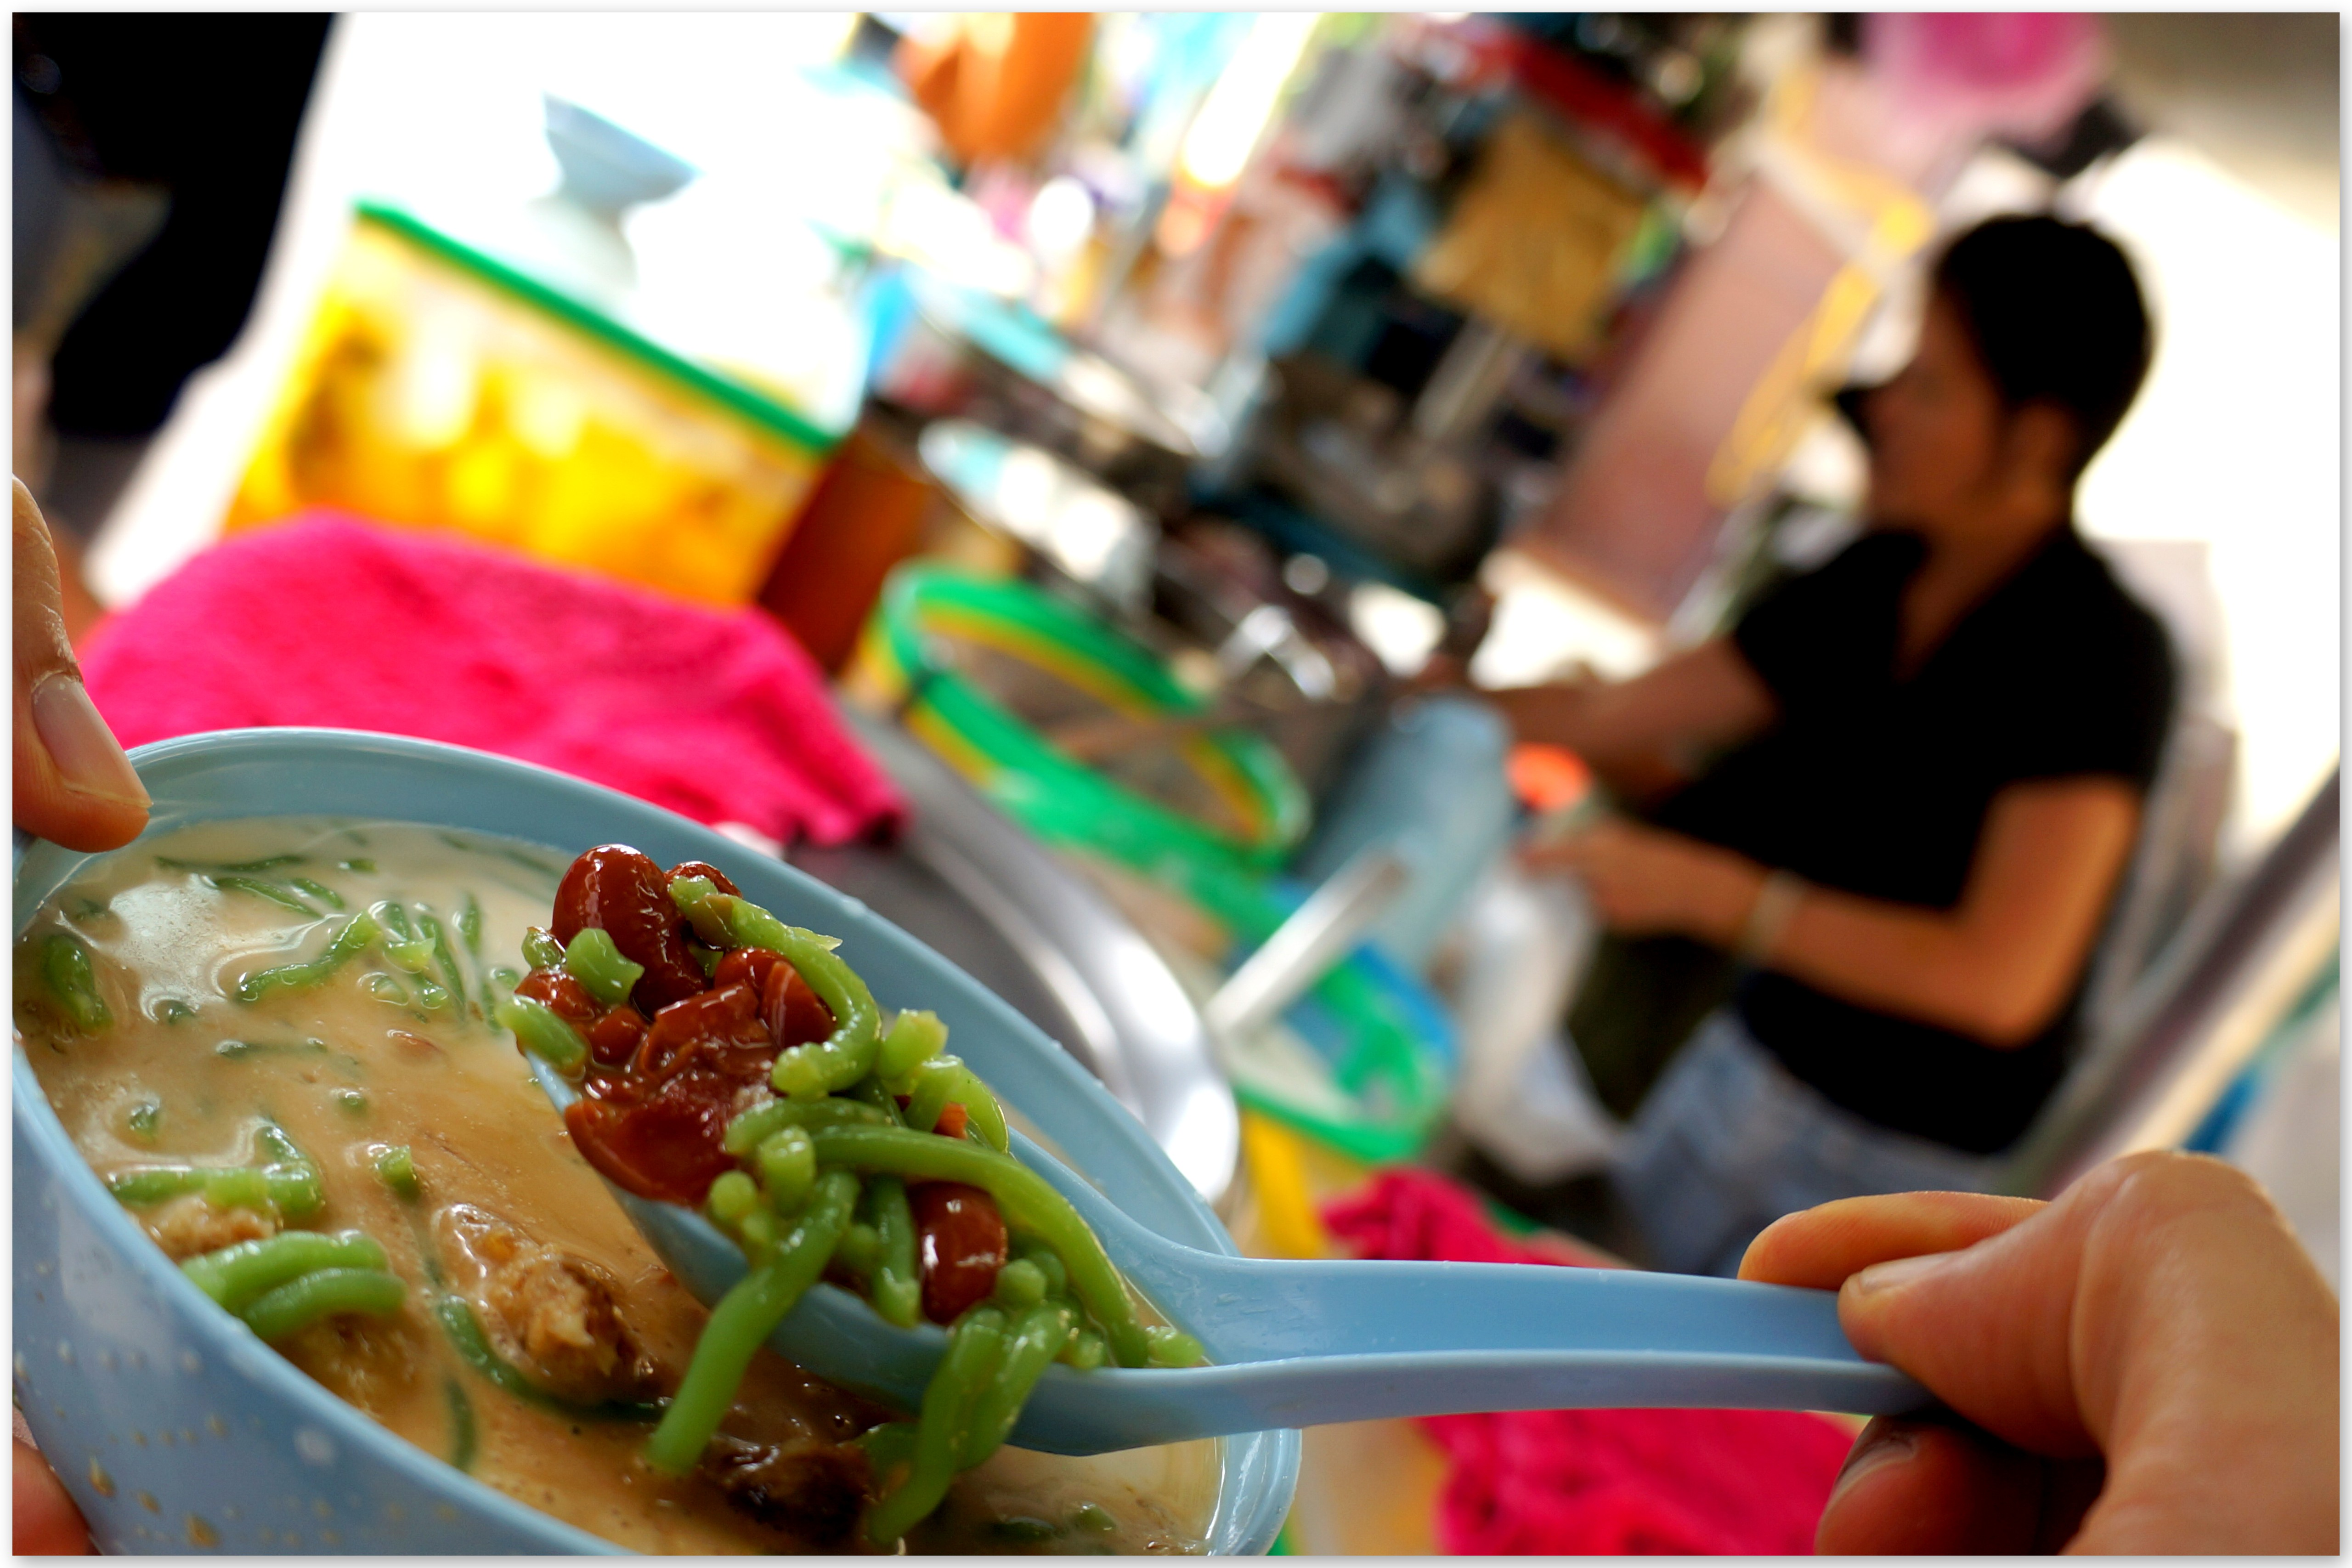 Cendol as found in Penang